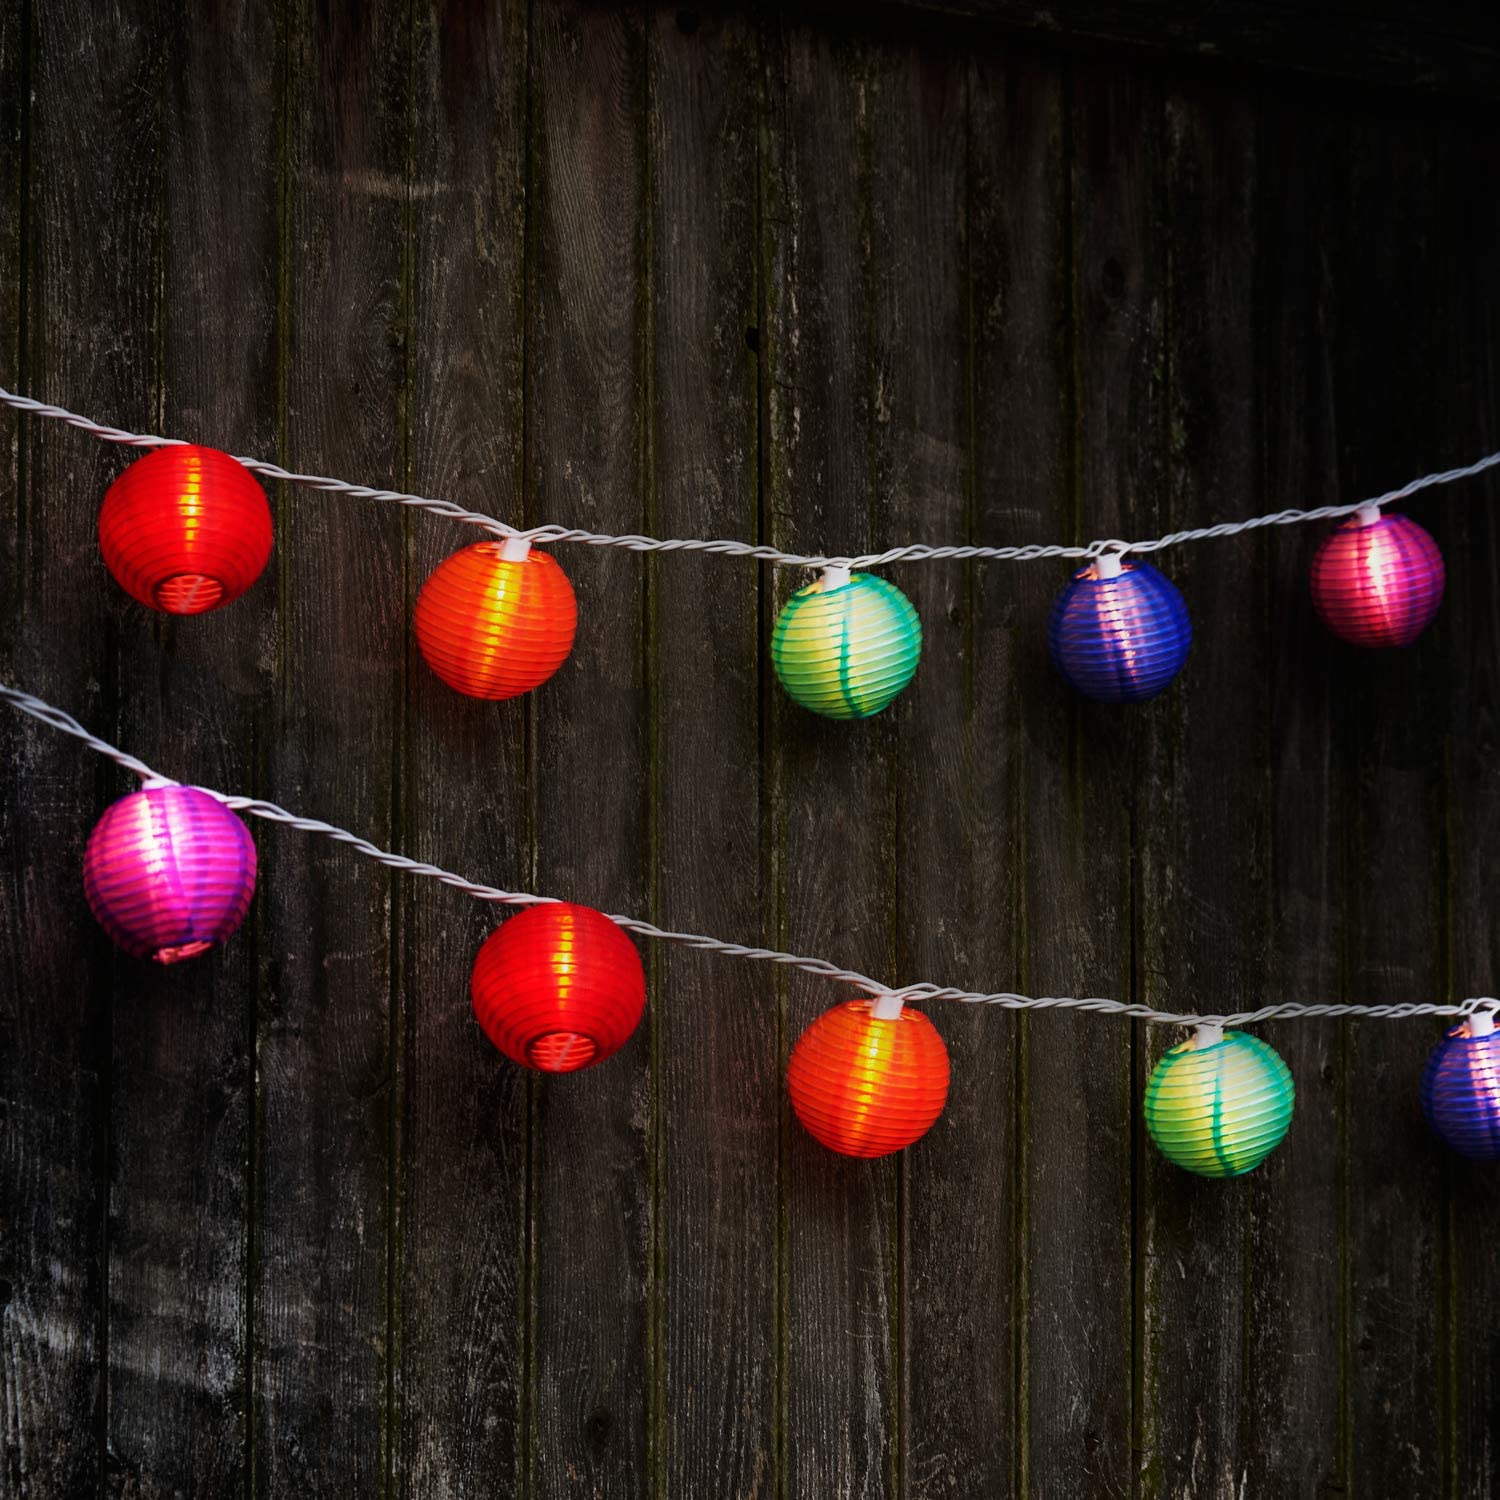 Amazon Com Multicolor Lantern String Lights 20 Colored Nylon Hanging Mini Lanterns With Warm White Bulbs 13 Feet Long Waterproof For Indoor Outdoor Lighting Plug In Connect Up To 22 Strands Home Improvement